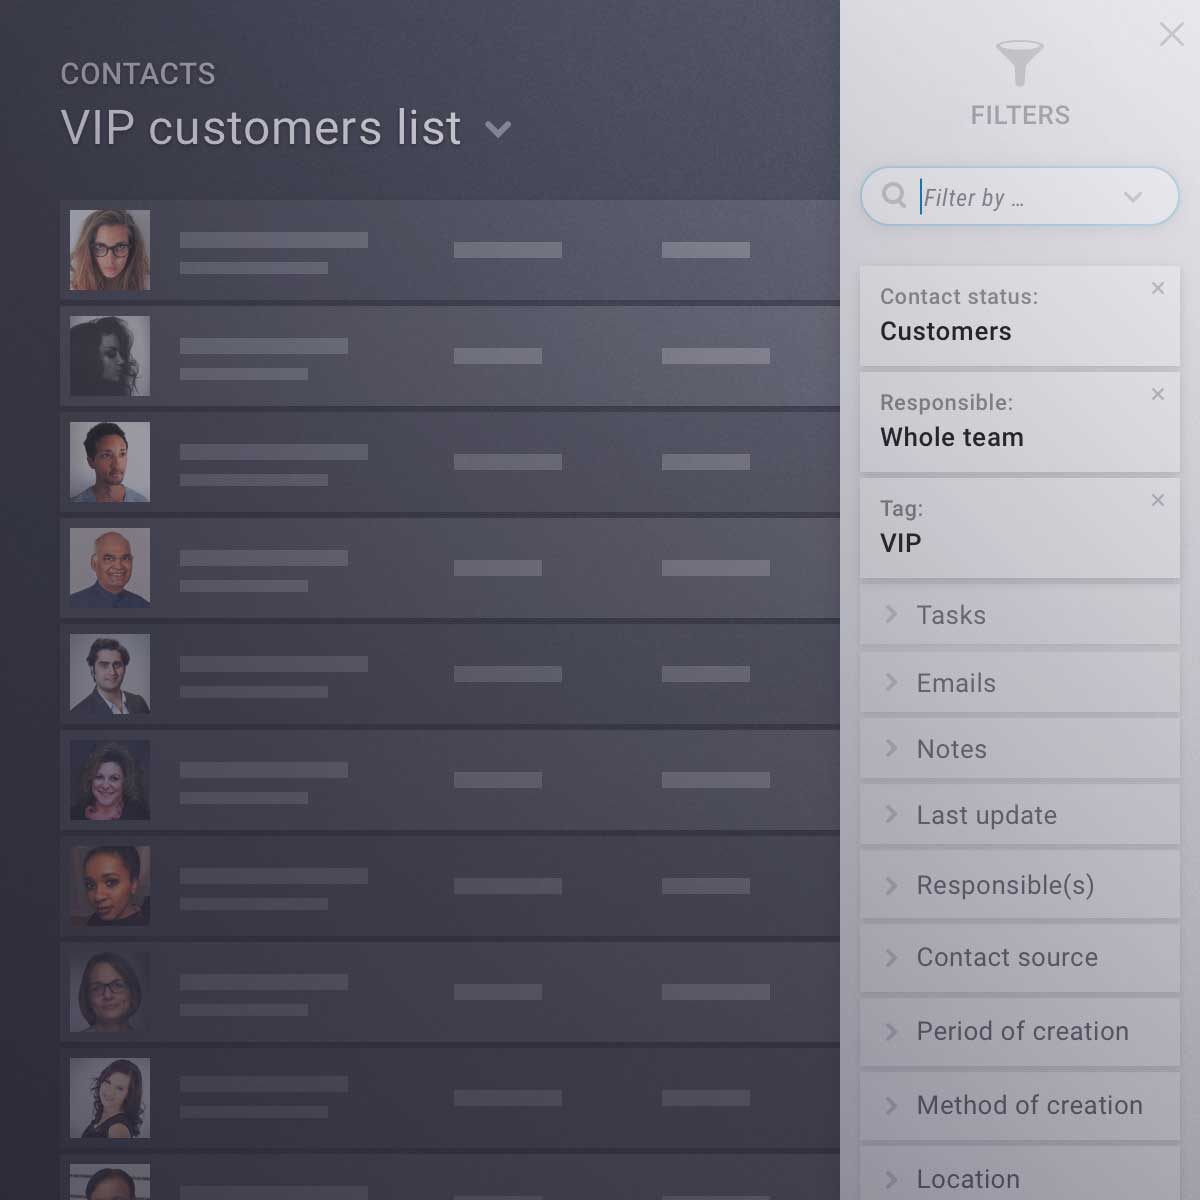 Manage, filter and segment your contacts